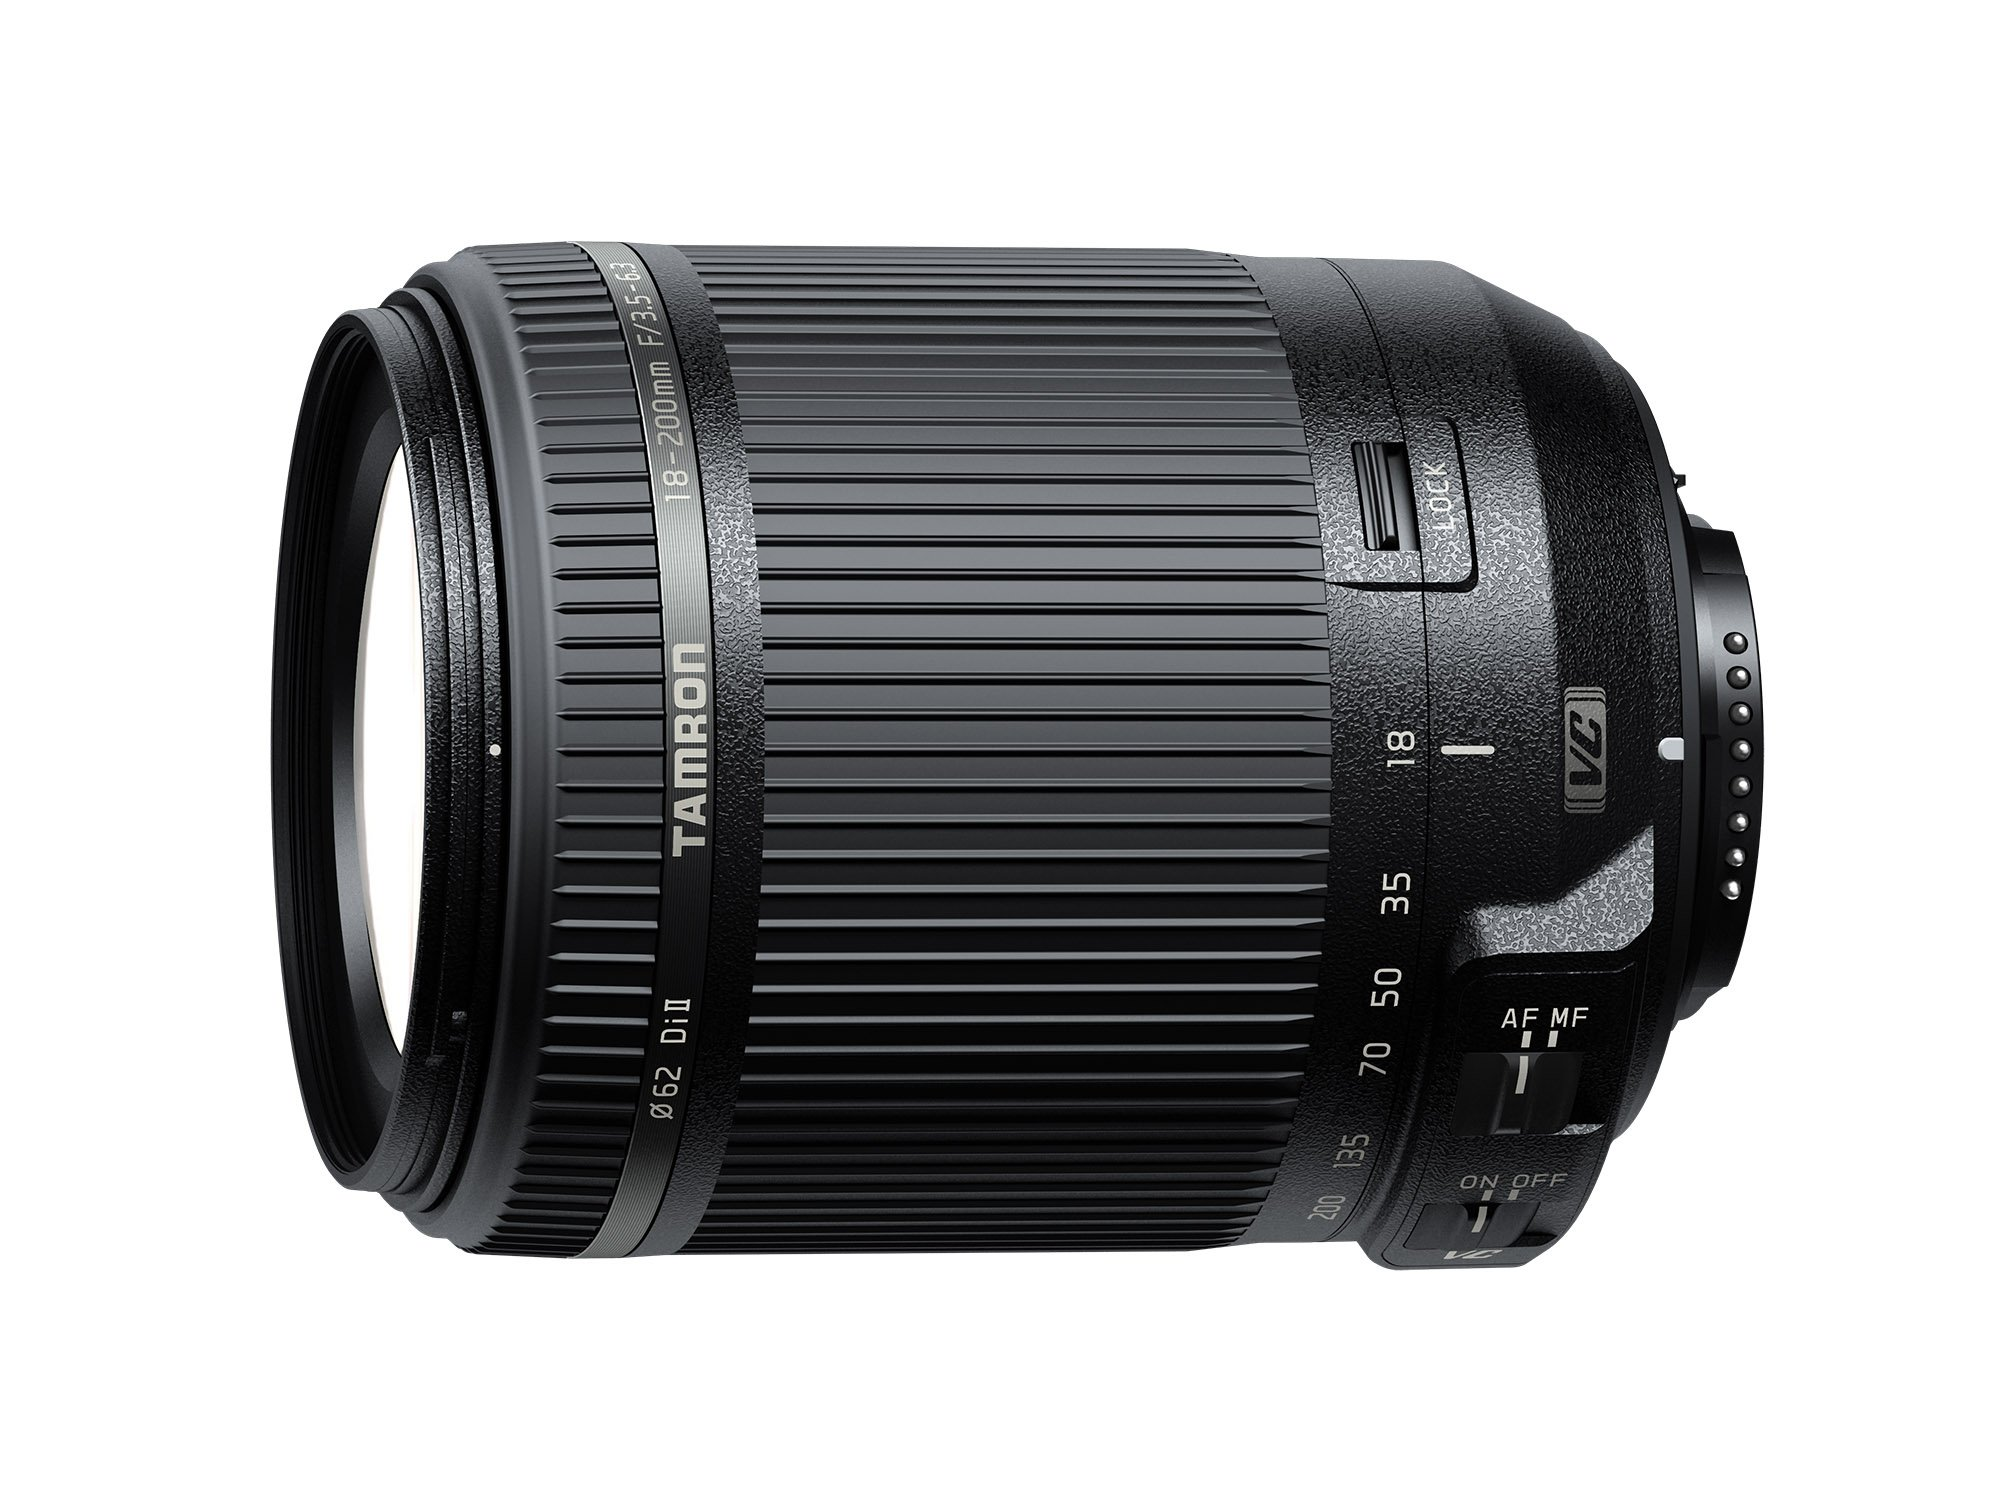 Tamron AF 18-200mm F/3.5-6.3 Di-II VC All-in-One Zoom for Nikon APS-C Digital SLR by Tamron